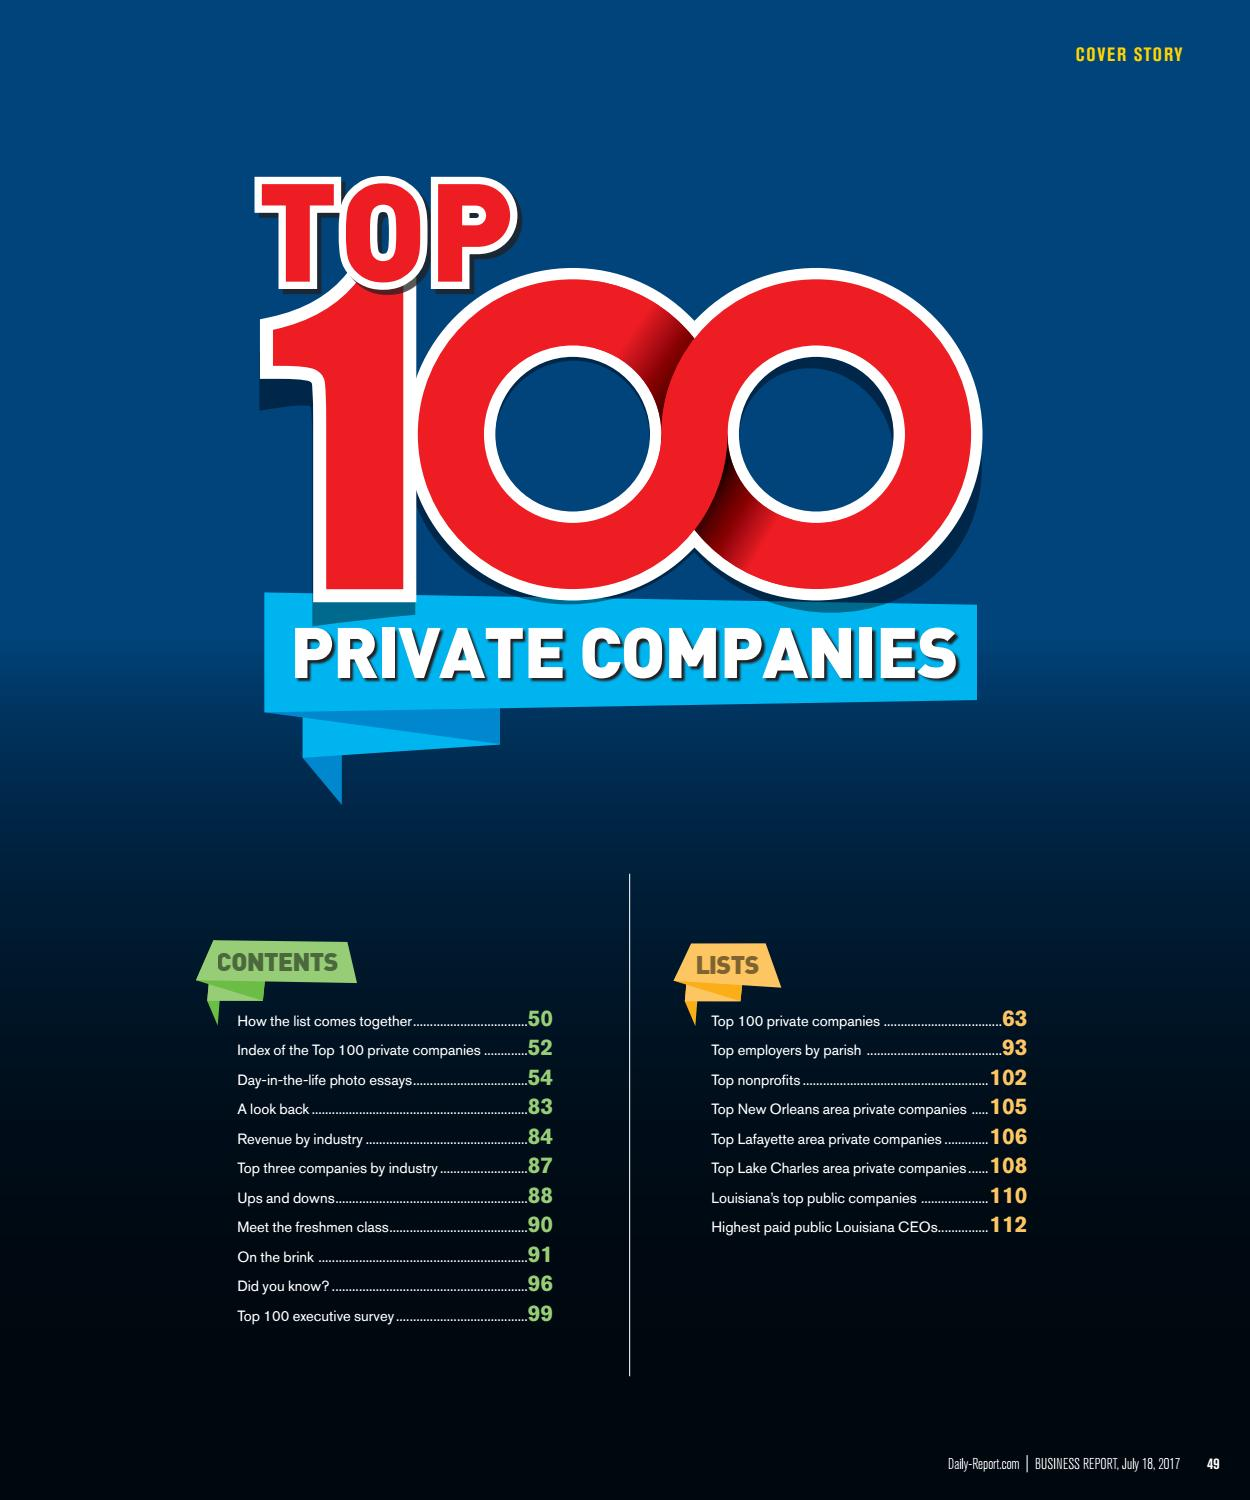 Baton Rouge Business Report 2017 Top 100 Companies ... on government map, mobile map, apple map, android map, education map, aaa cooper transit time map, at&t u-verse availability map, amazon map, projected snow accumulation map, technology map, nj new jersey map, office map, power map, ipad map, concord new hampshire map, louisiana natural resources map, coverage map, data map, microsoft map, construction map,